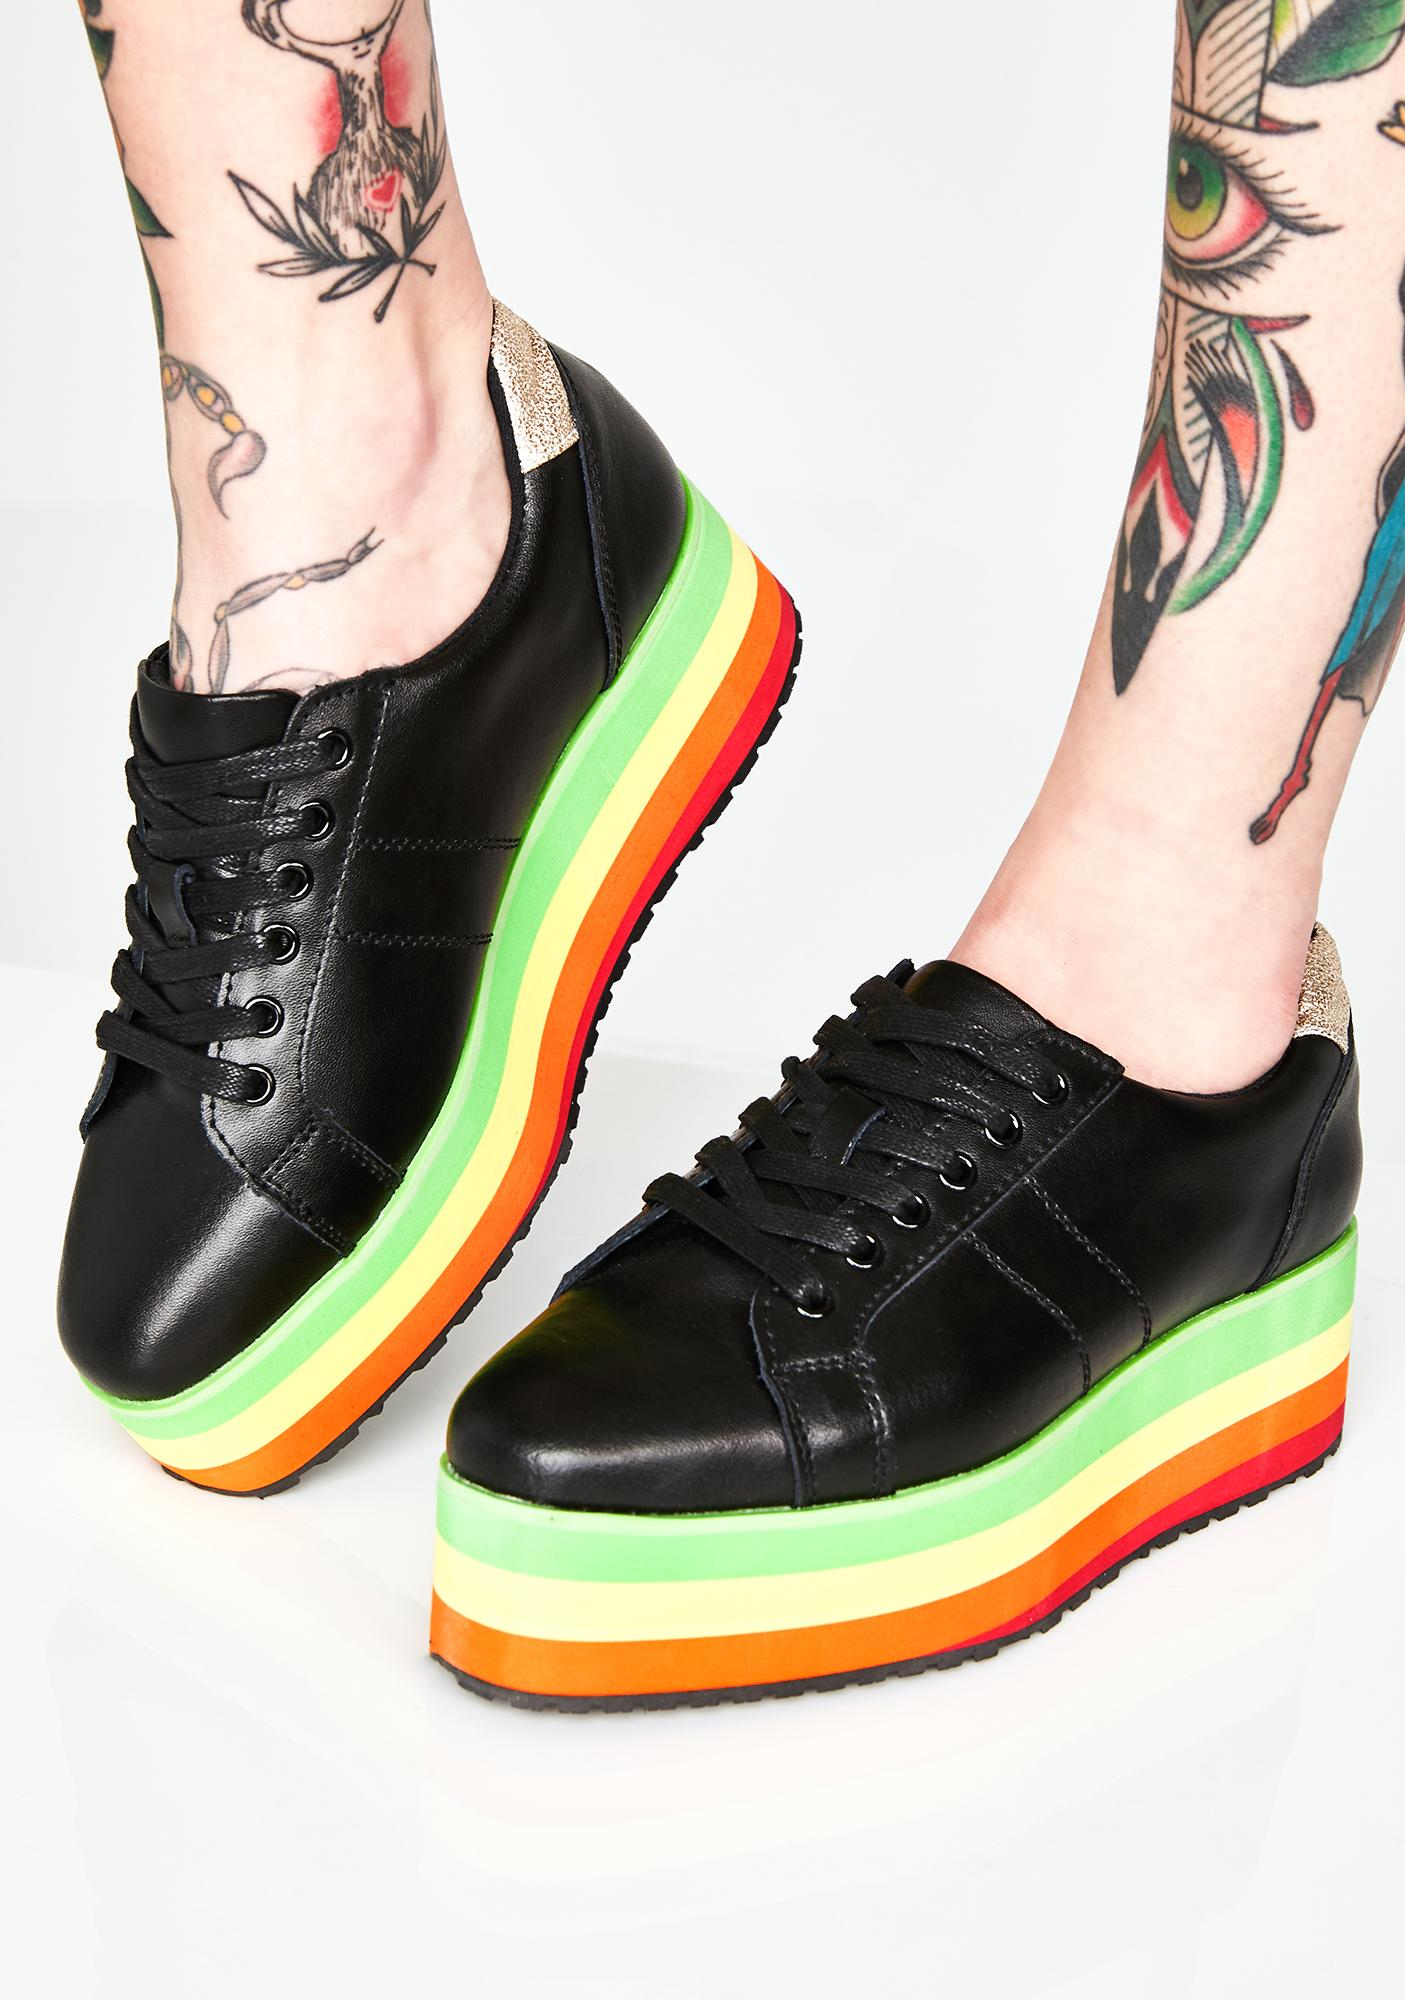 Volatile Shoes Blackout Jukebox Rainbow Sneakers